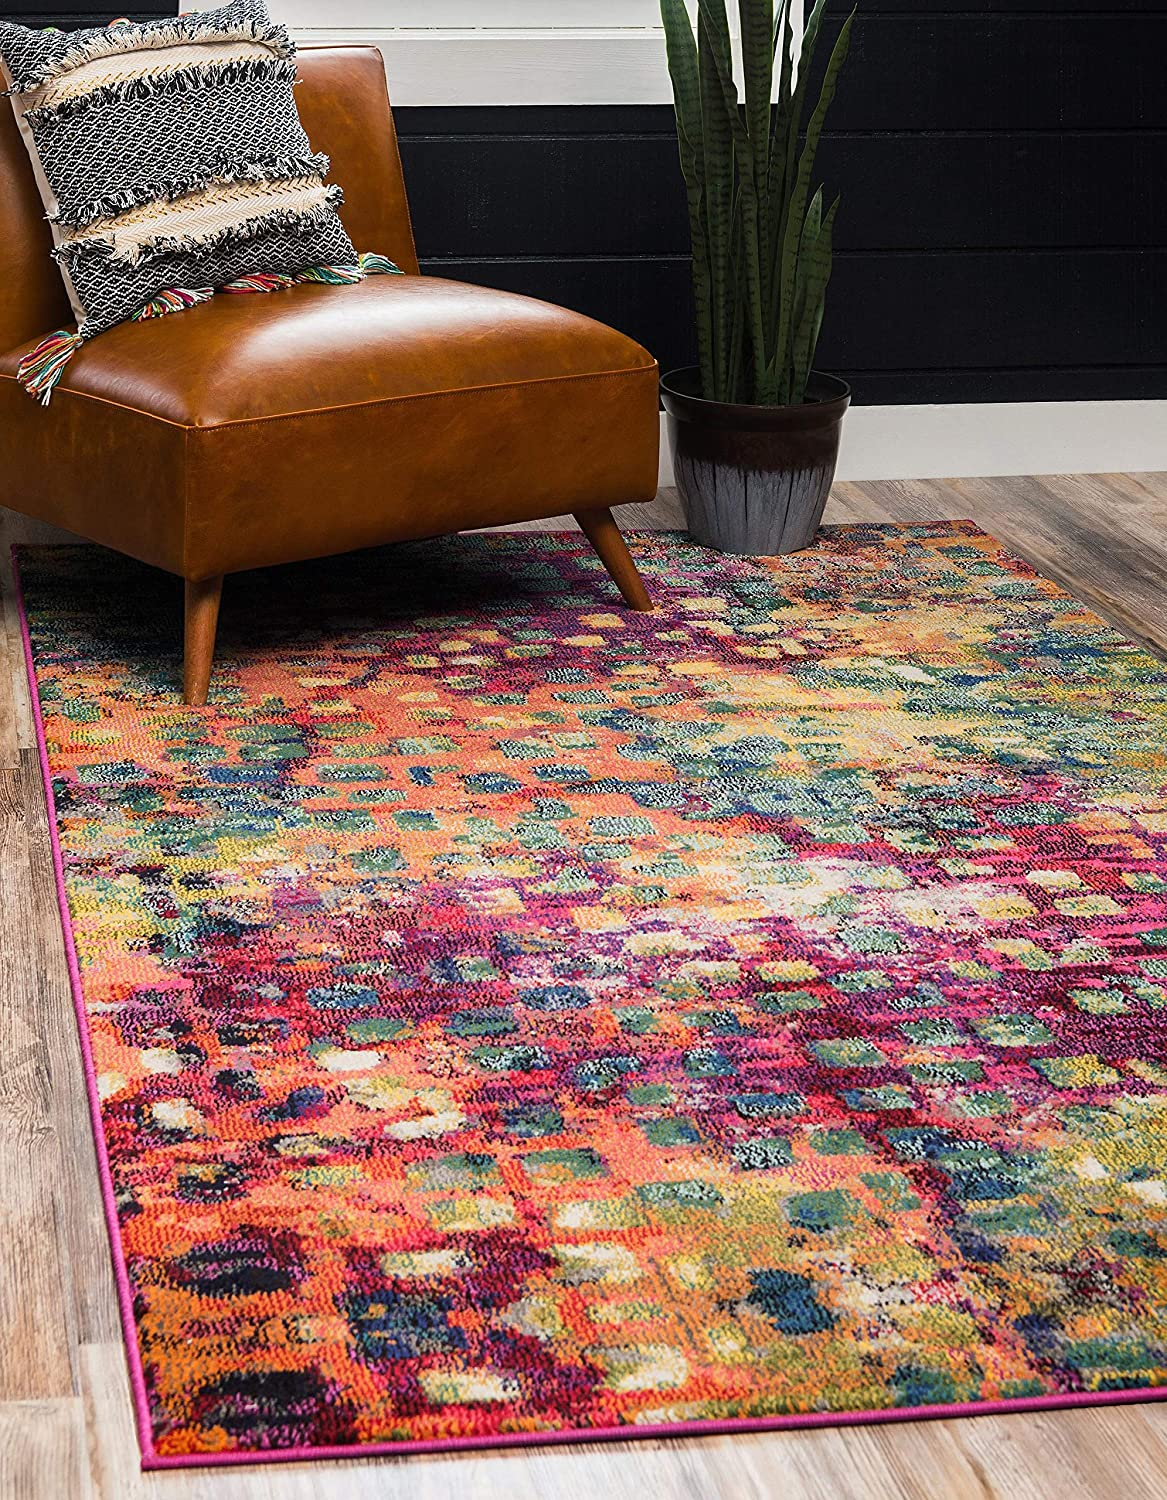 Unique Loom Jardin Collection Colorful Abstract Multi Area Rug (4' 0 x 6' 0)